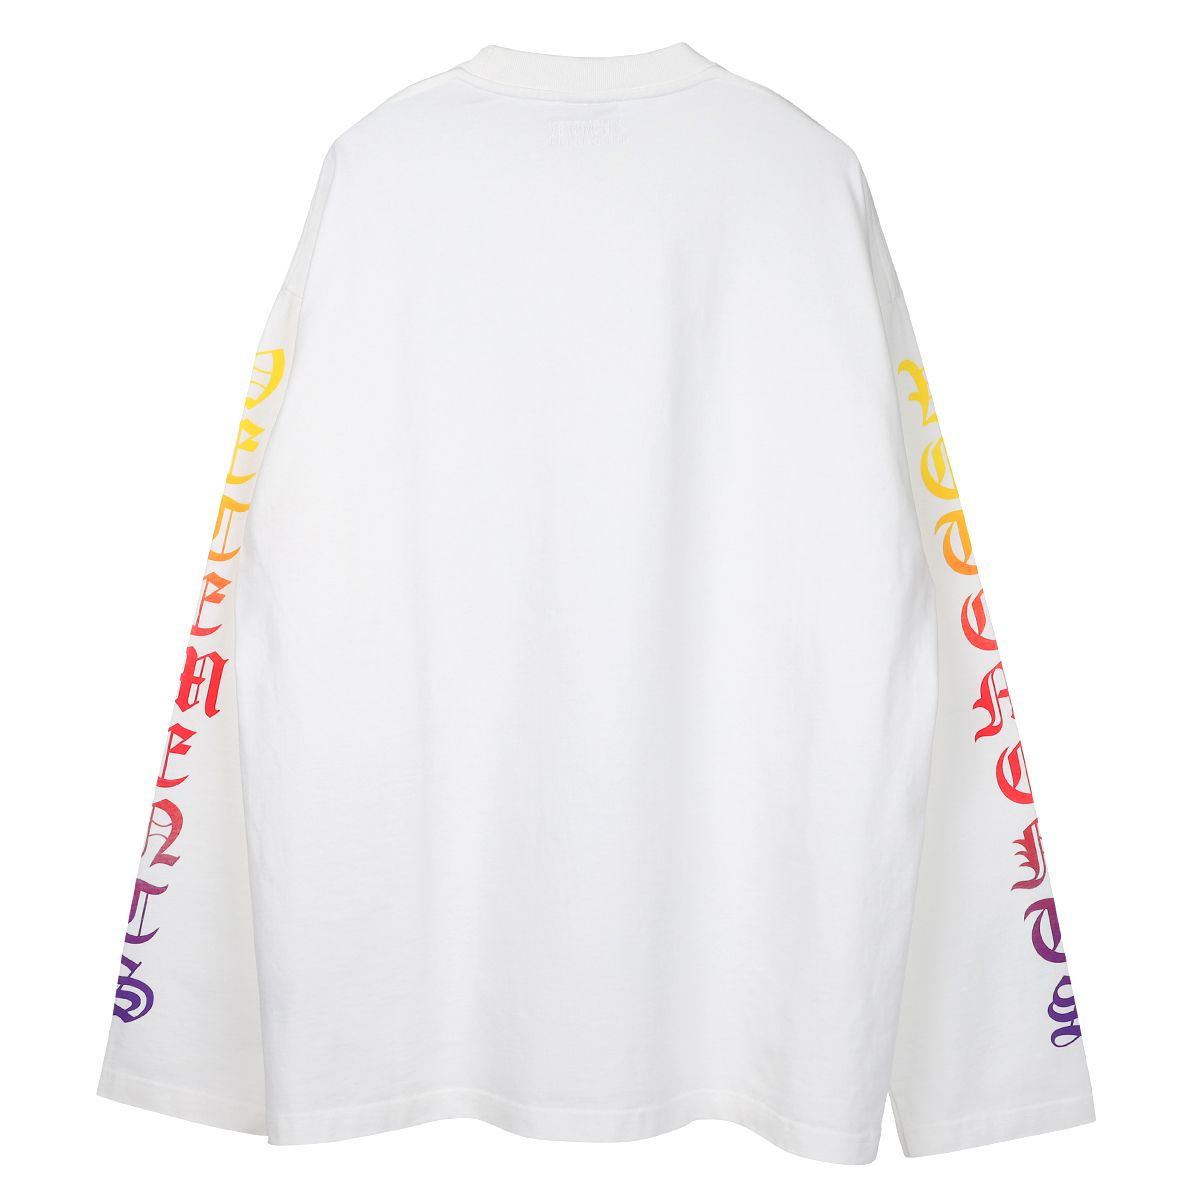 VETEMENTS DEGRADE GOTHIC LOGO LONGSLEEVE / WHITE